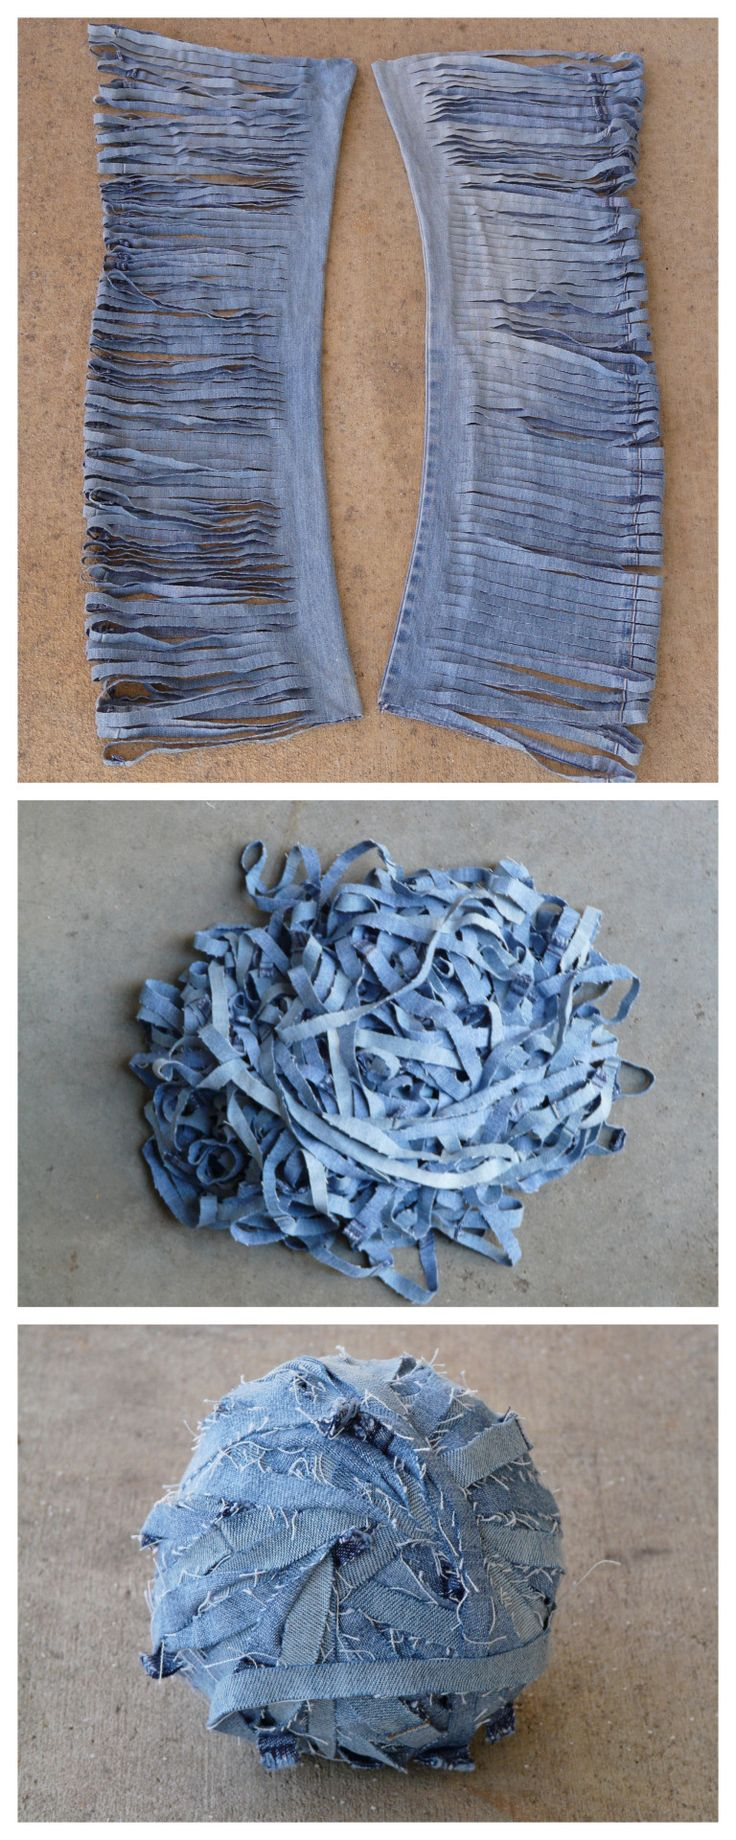 DIY Denim Yarn Tutorial from Crochetbug.Make DIY Denim Yarn out of old jeans…